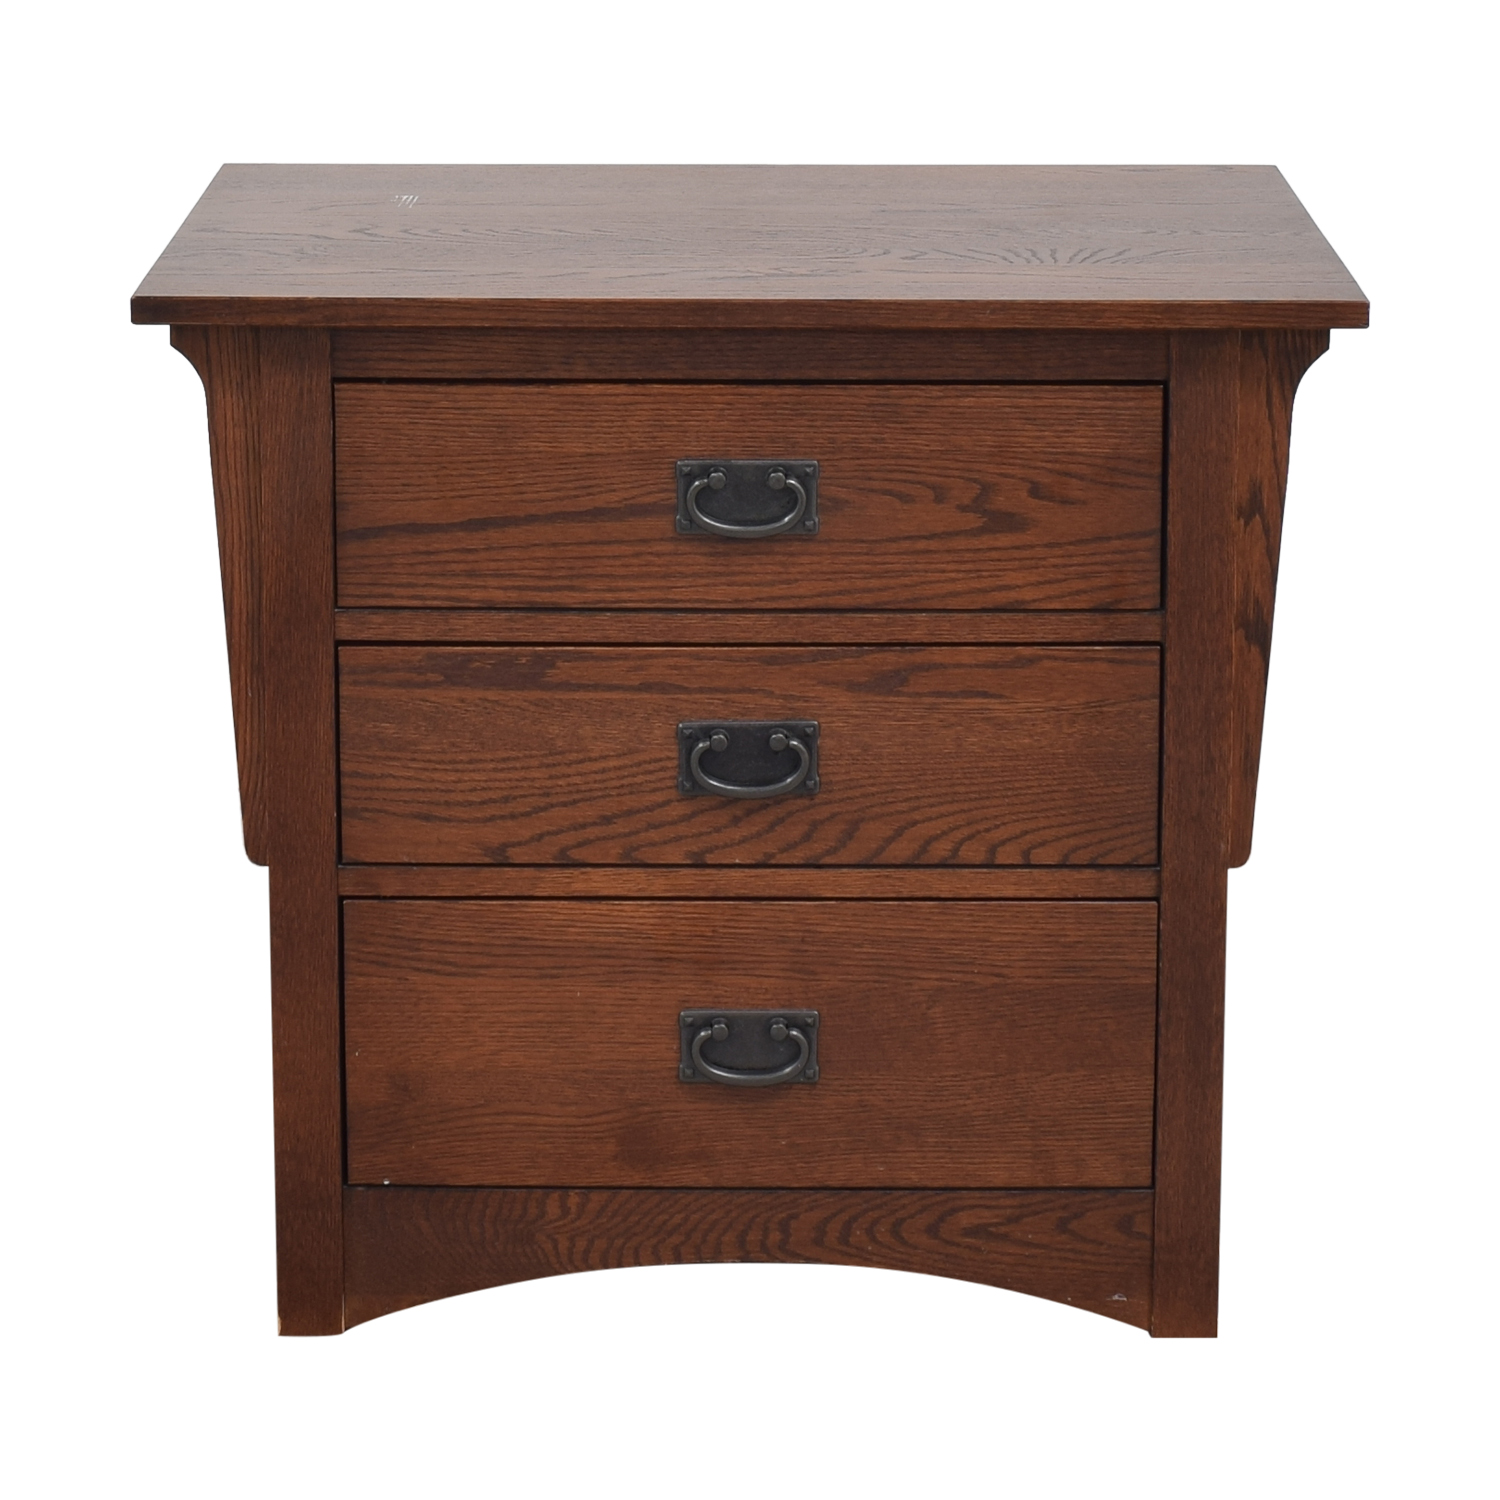 Shermag Shermag Mission Style Night Stand brown